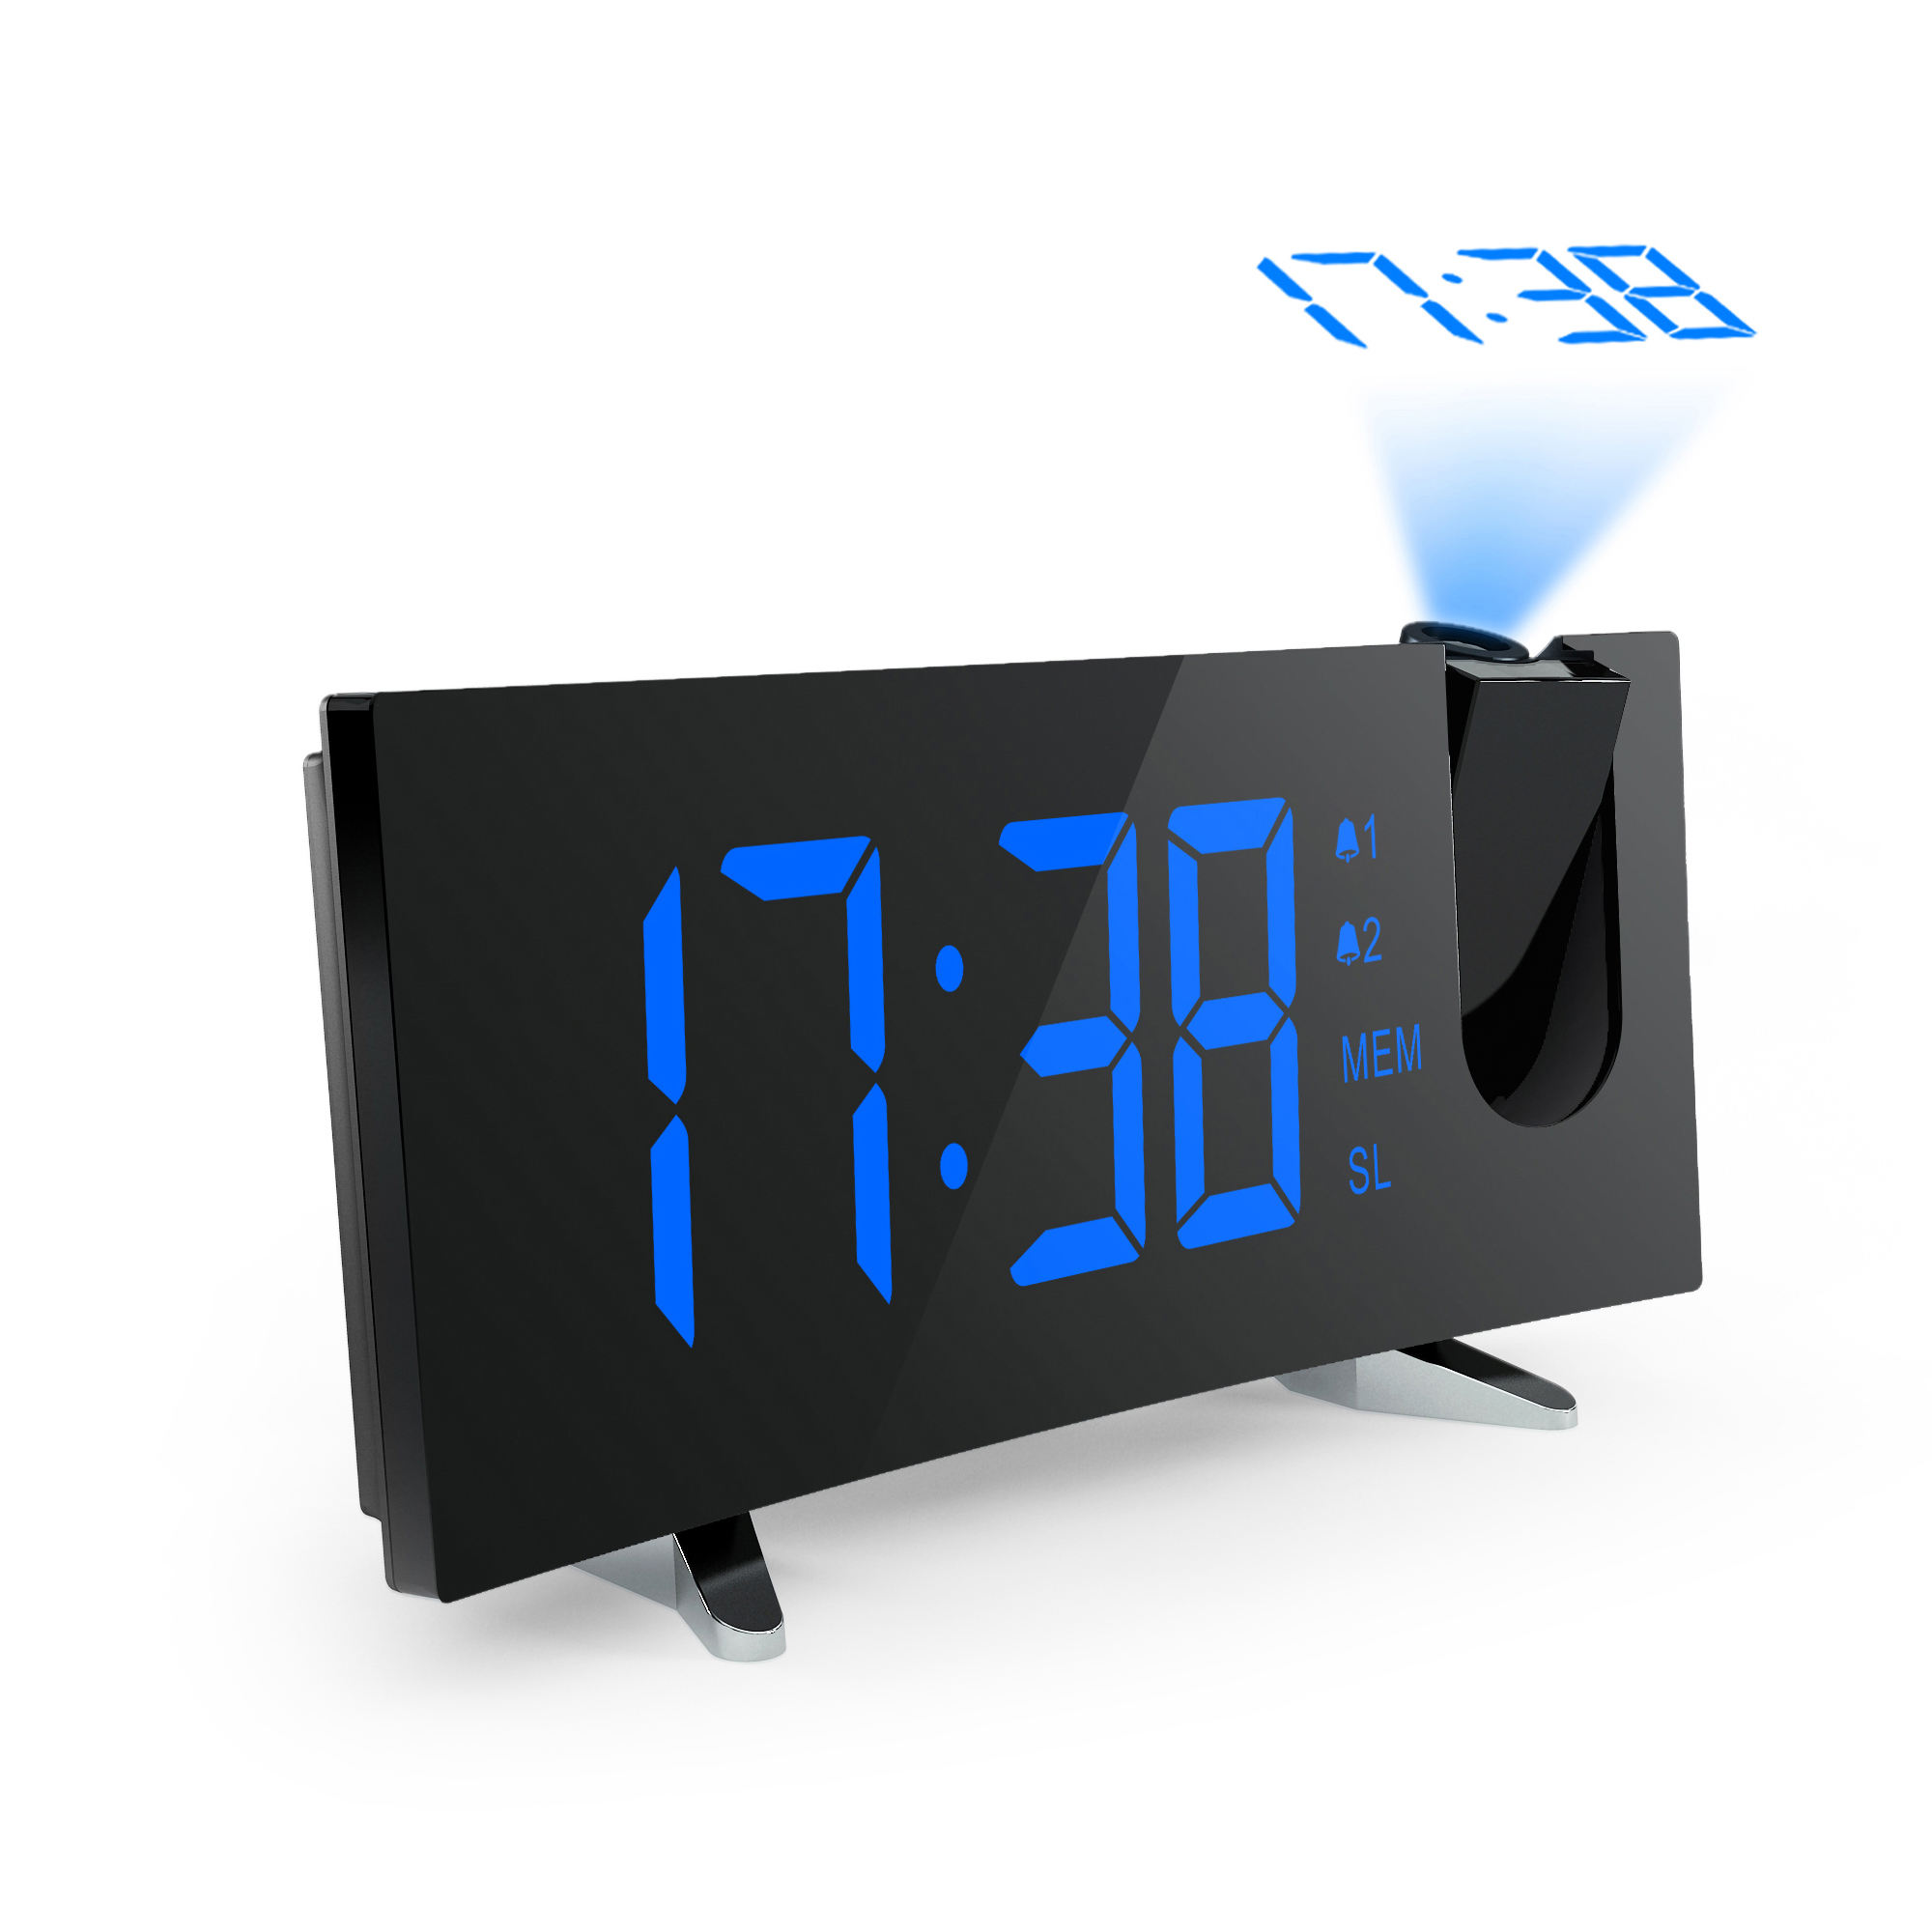 Modern Large-Display Digital Alarm Clock led with FM Radio and Projection